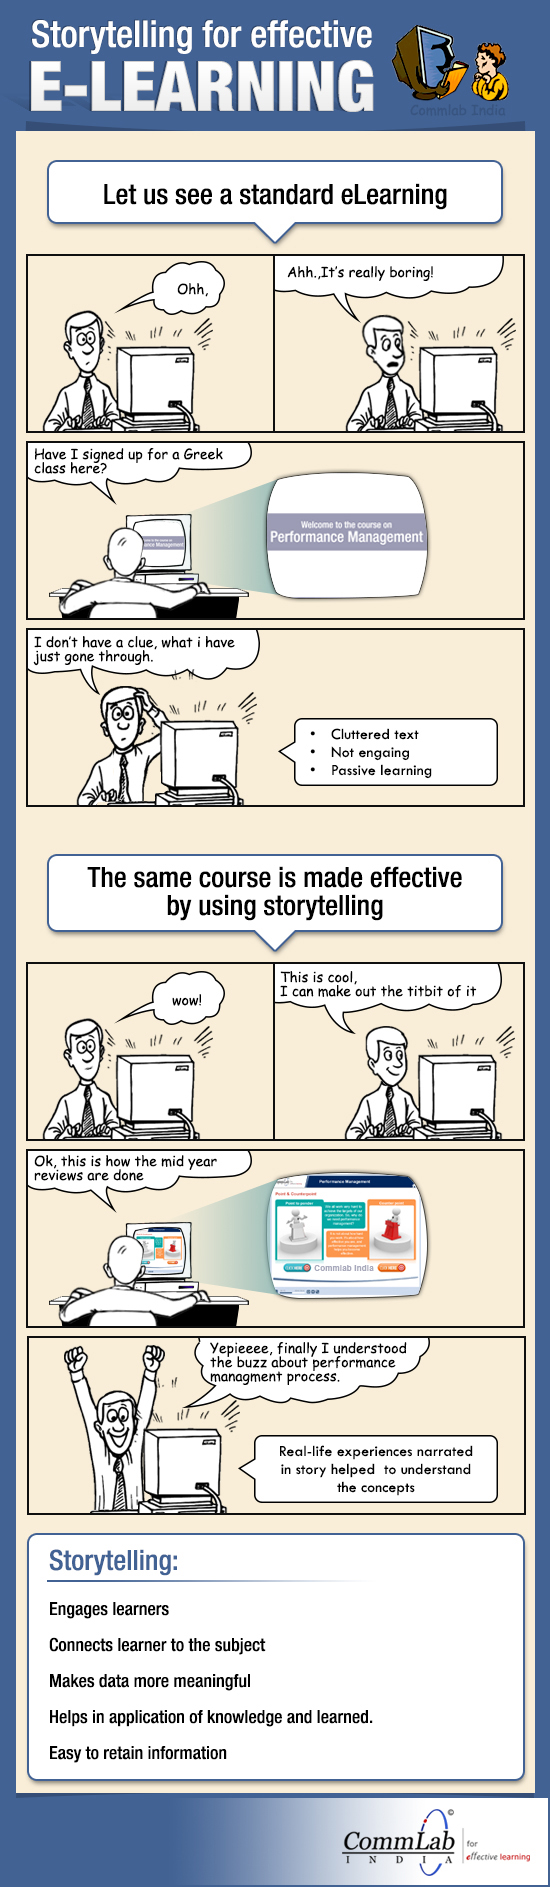 Storytelling For Effective E-learning - An Infographic